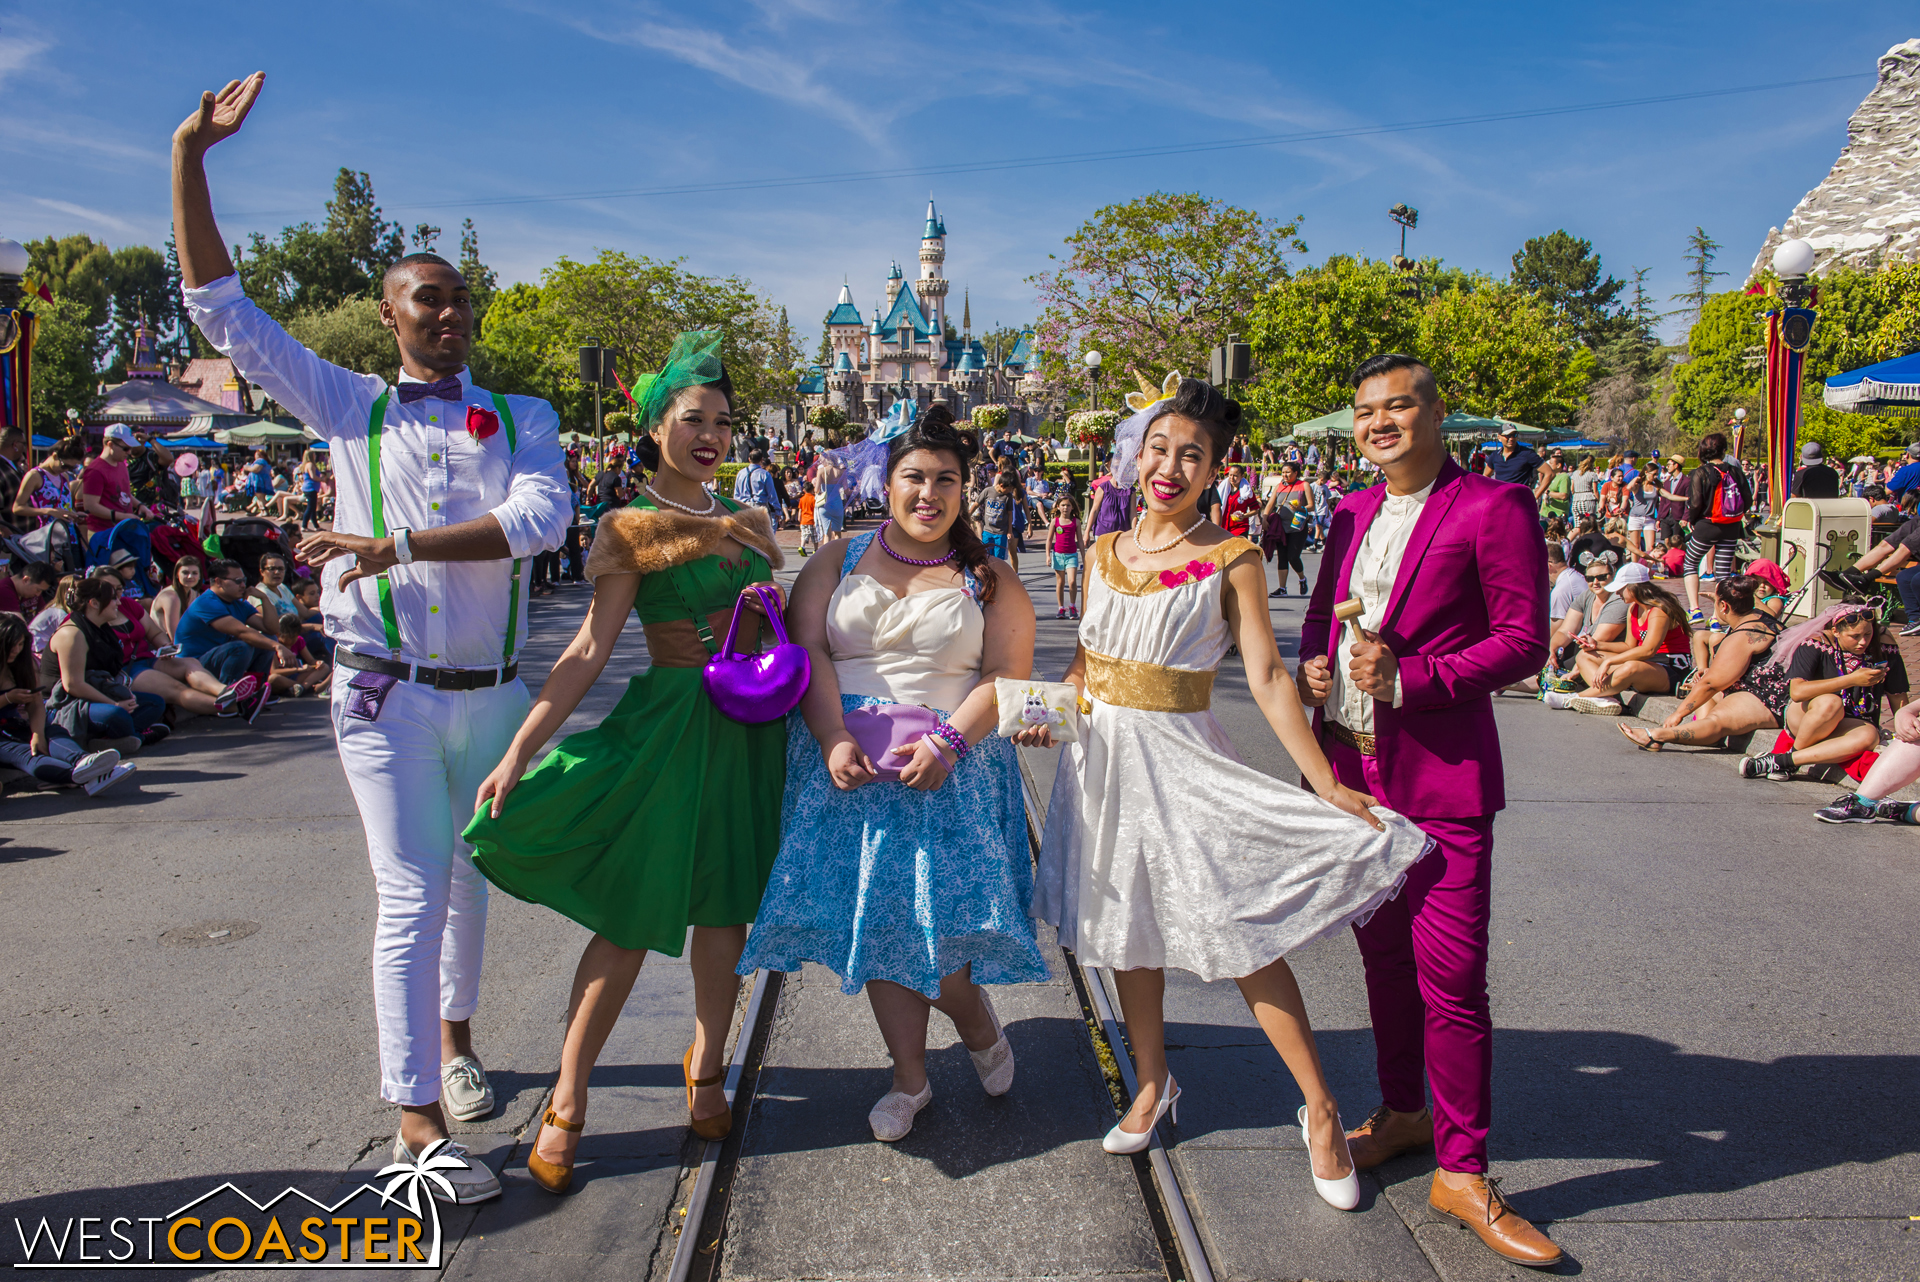 After vanquishing Zurg (but somehow sparing Lotso), this  Toy Story  Disneybound group was complete--including Spanish Mode Buzz Lightyear (  @Disneyland_Over_Everything   on Instagram).